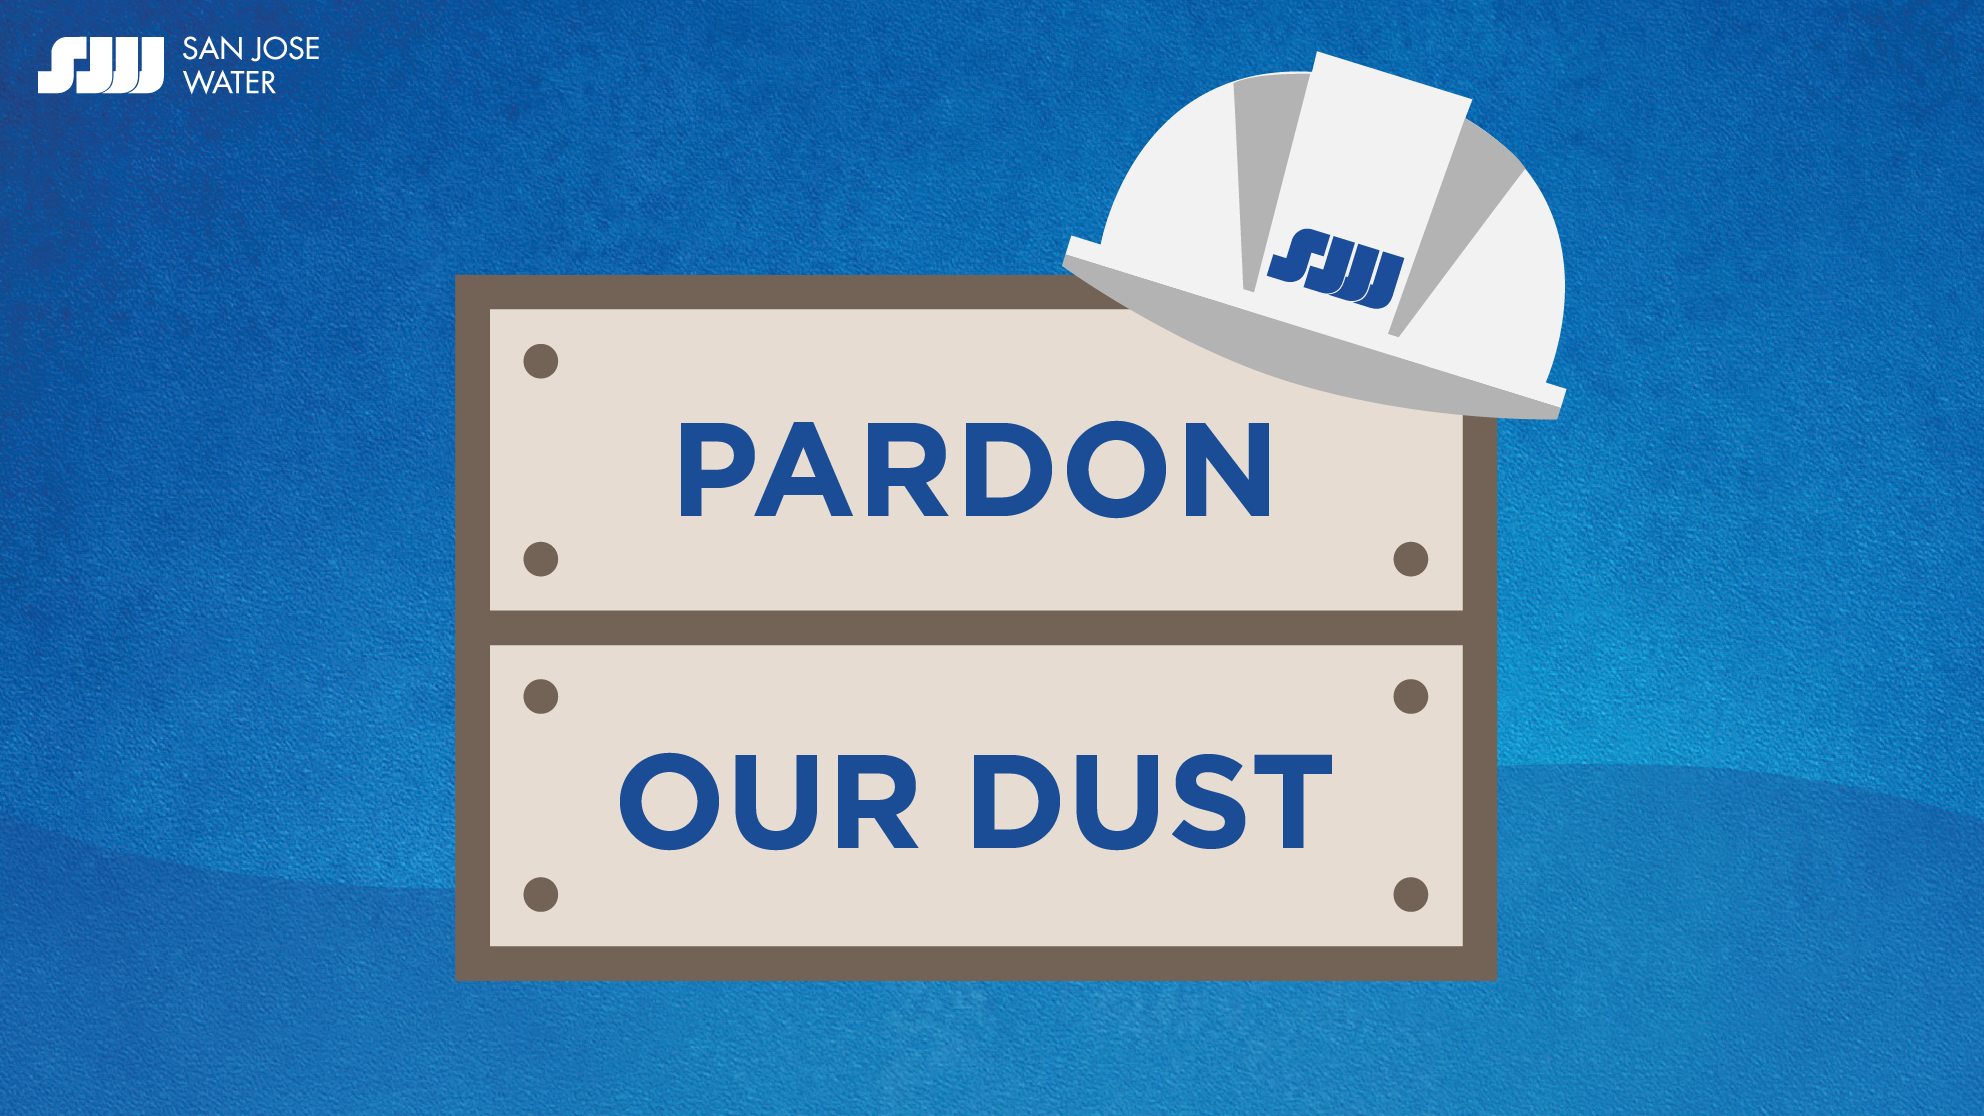 Pardon Our Dust graphic